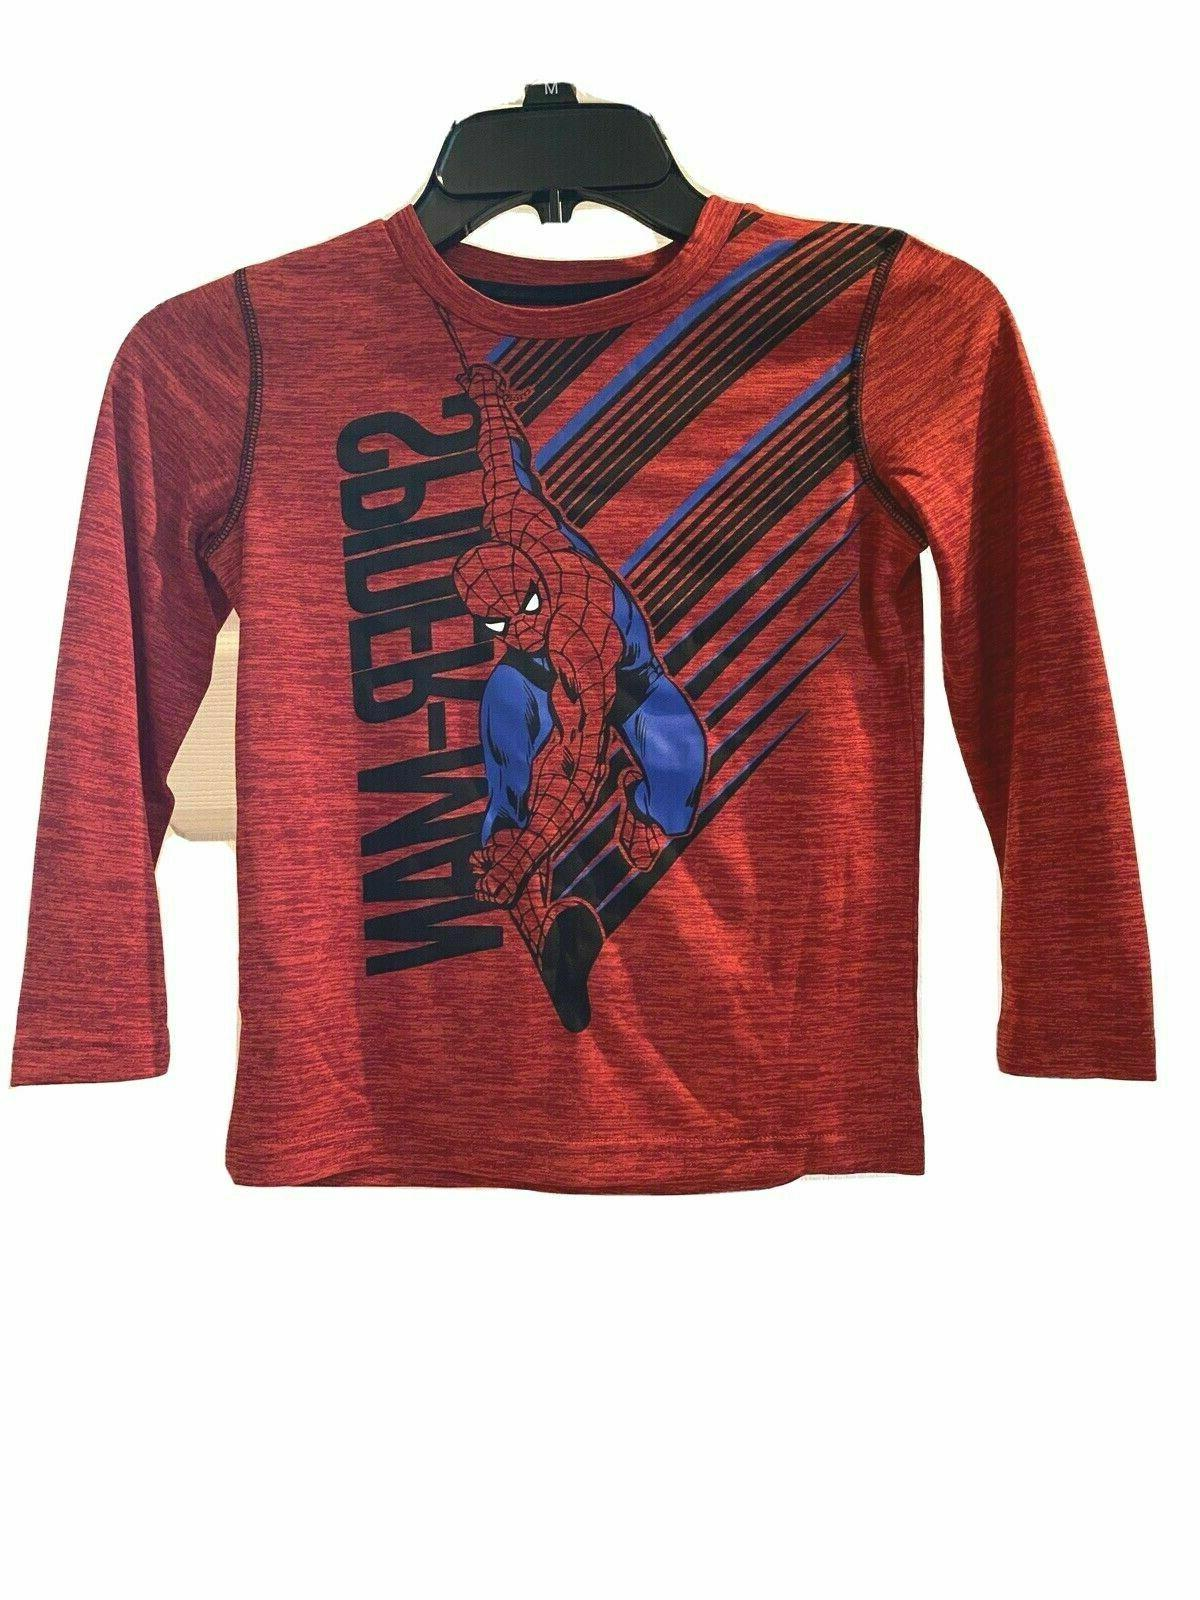 Jumping Spiderman Long Size 6